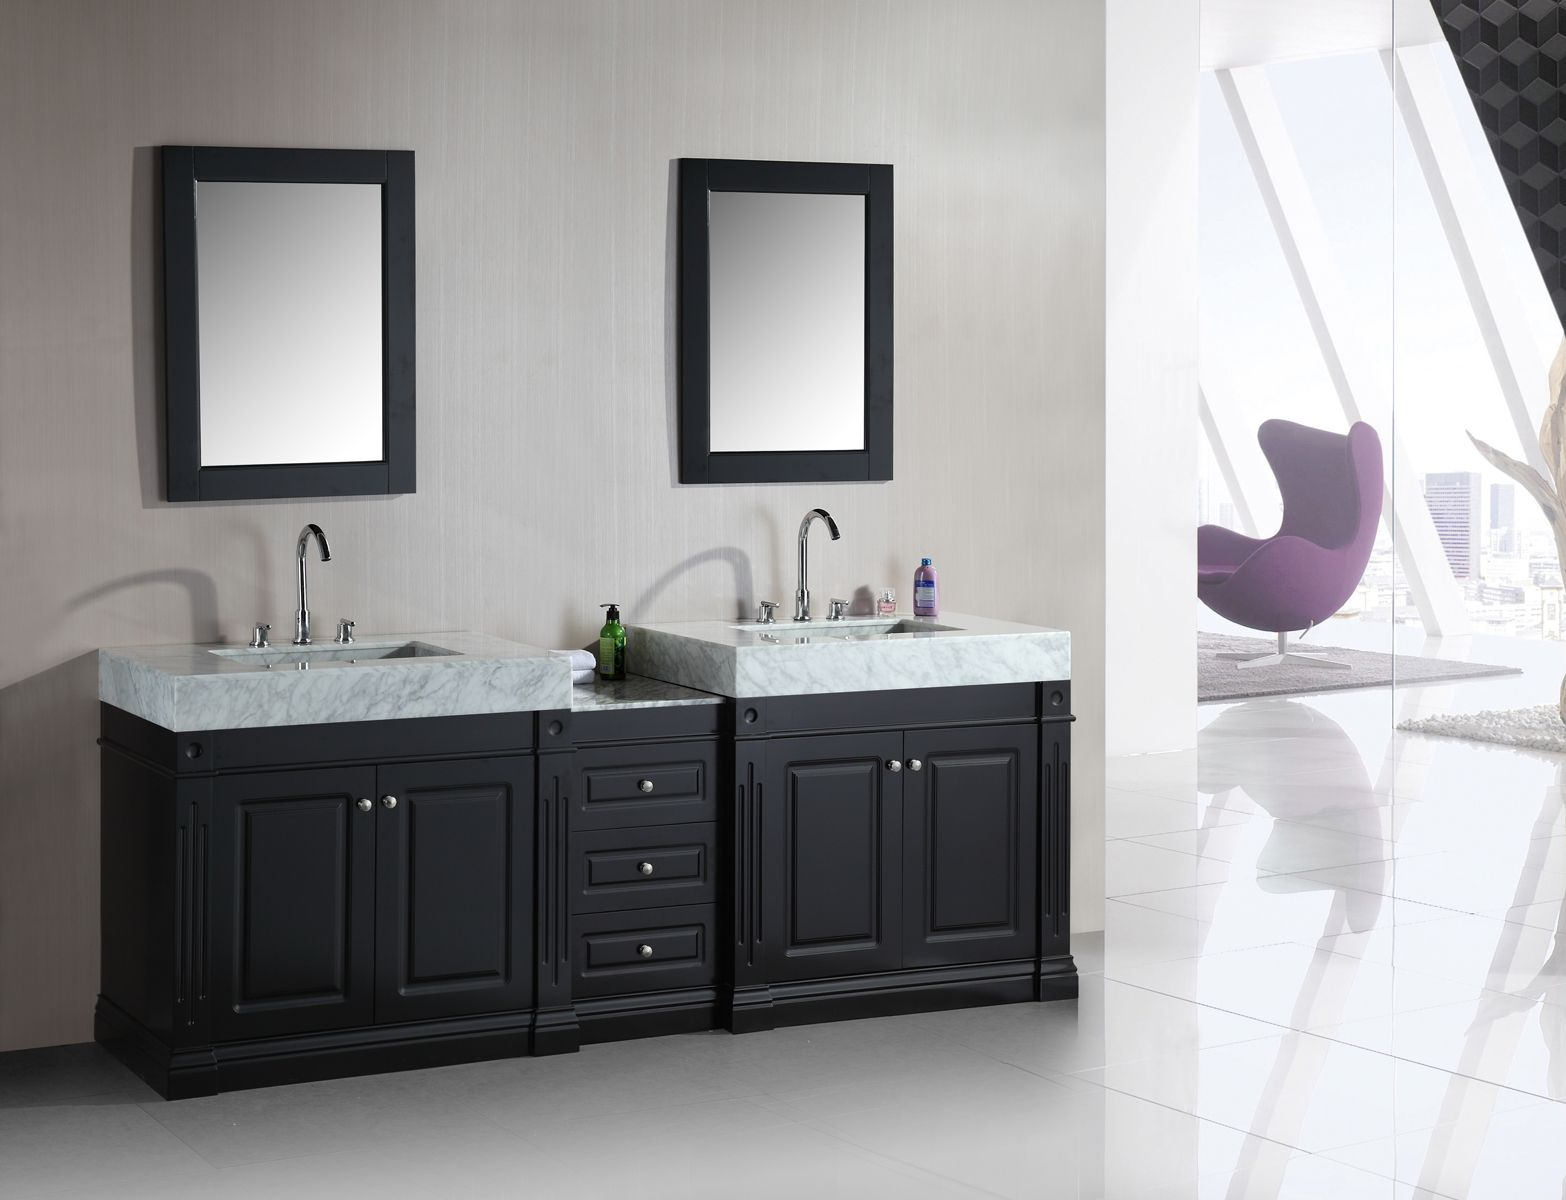 Bathroom Cabinets Double Sink Designs Html on double sink bathroom decor, double bowl bathroom sink, double sink base cabinets, double sink bathroom floor plans, double sink furniture, double sink vanity with makeup table, double sink vanity units, double sink bathroom counters, double sink granite, double sink bathroom remodel, double sink bathroom mirrors, double sink medicine cabinet, double sink kitchen, double trough bathroom sink, double bathroom vanities, double sink baths, double sink vanity tops, double sink bathroom decorating ideas, double sink center cabinet, double sink bathroom design,